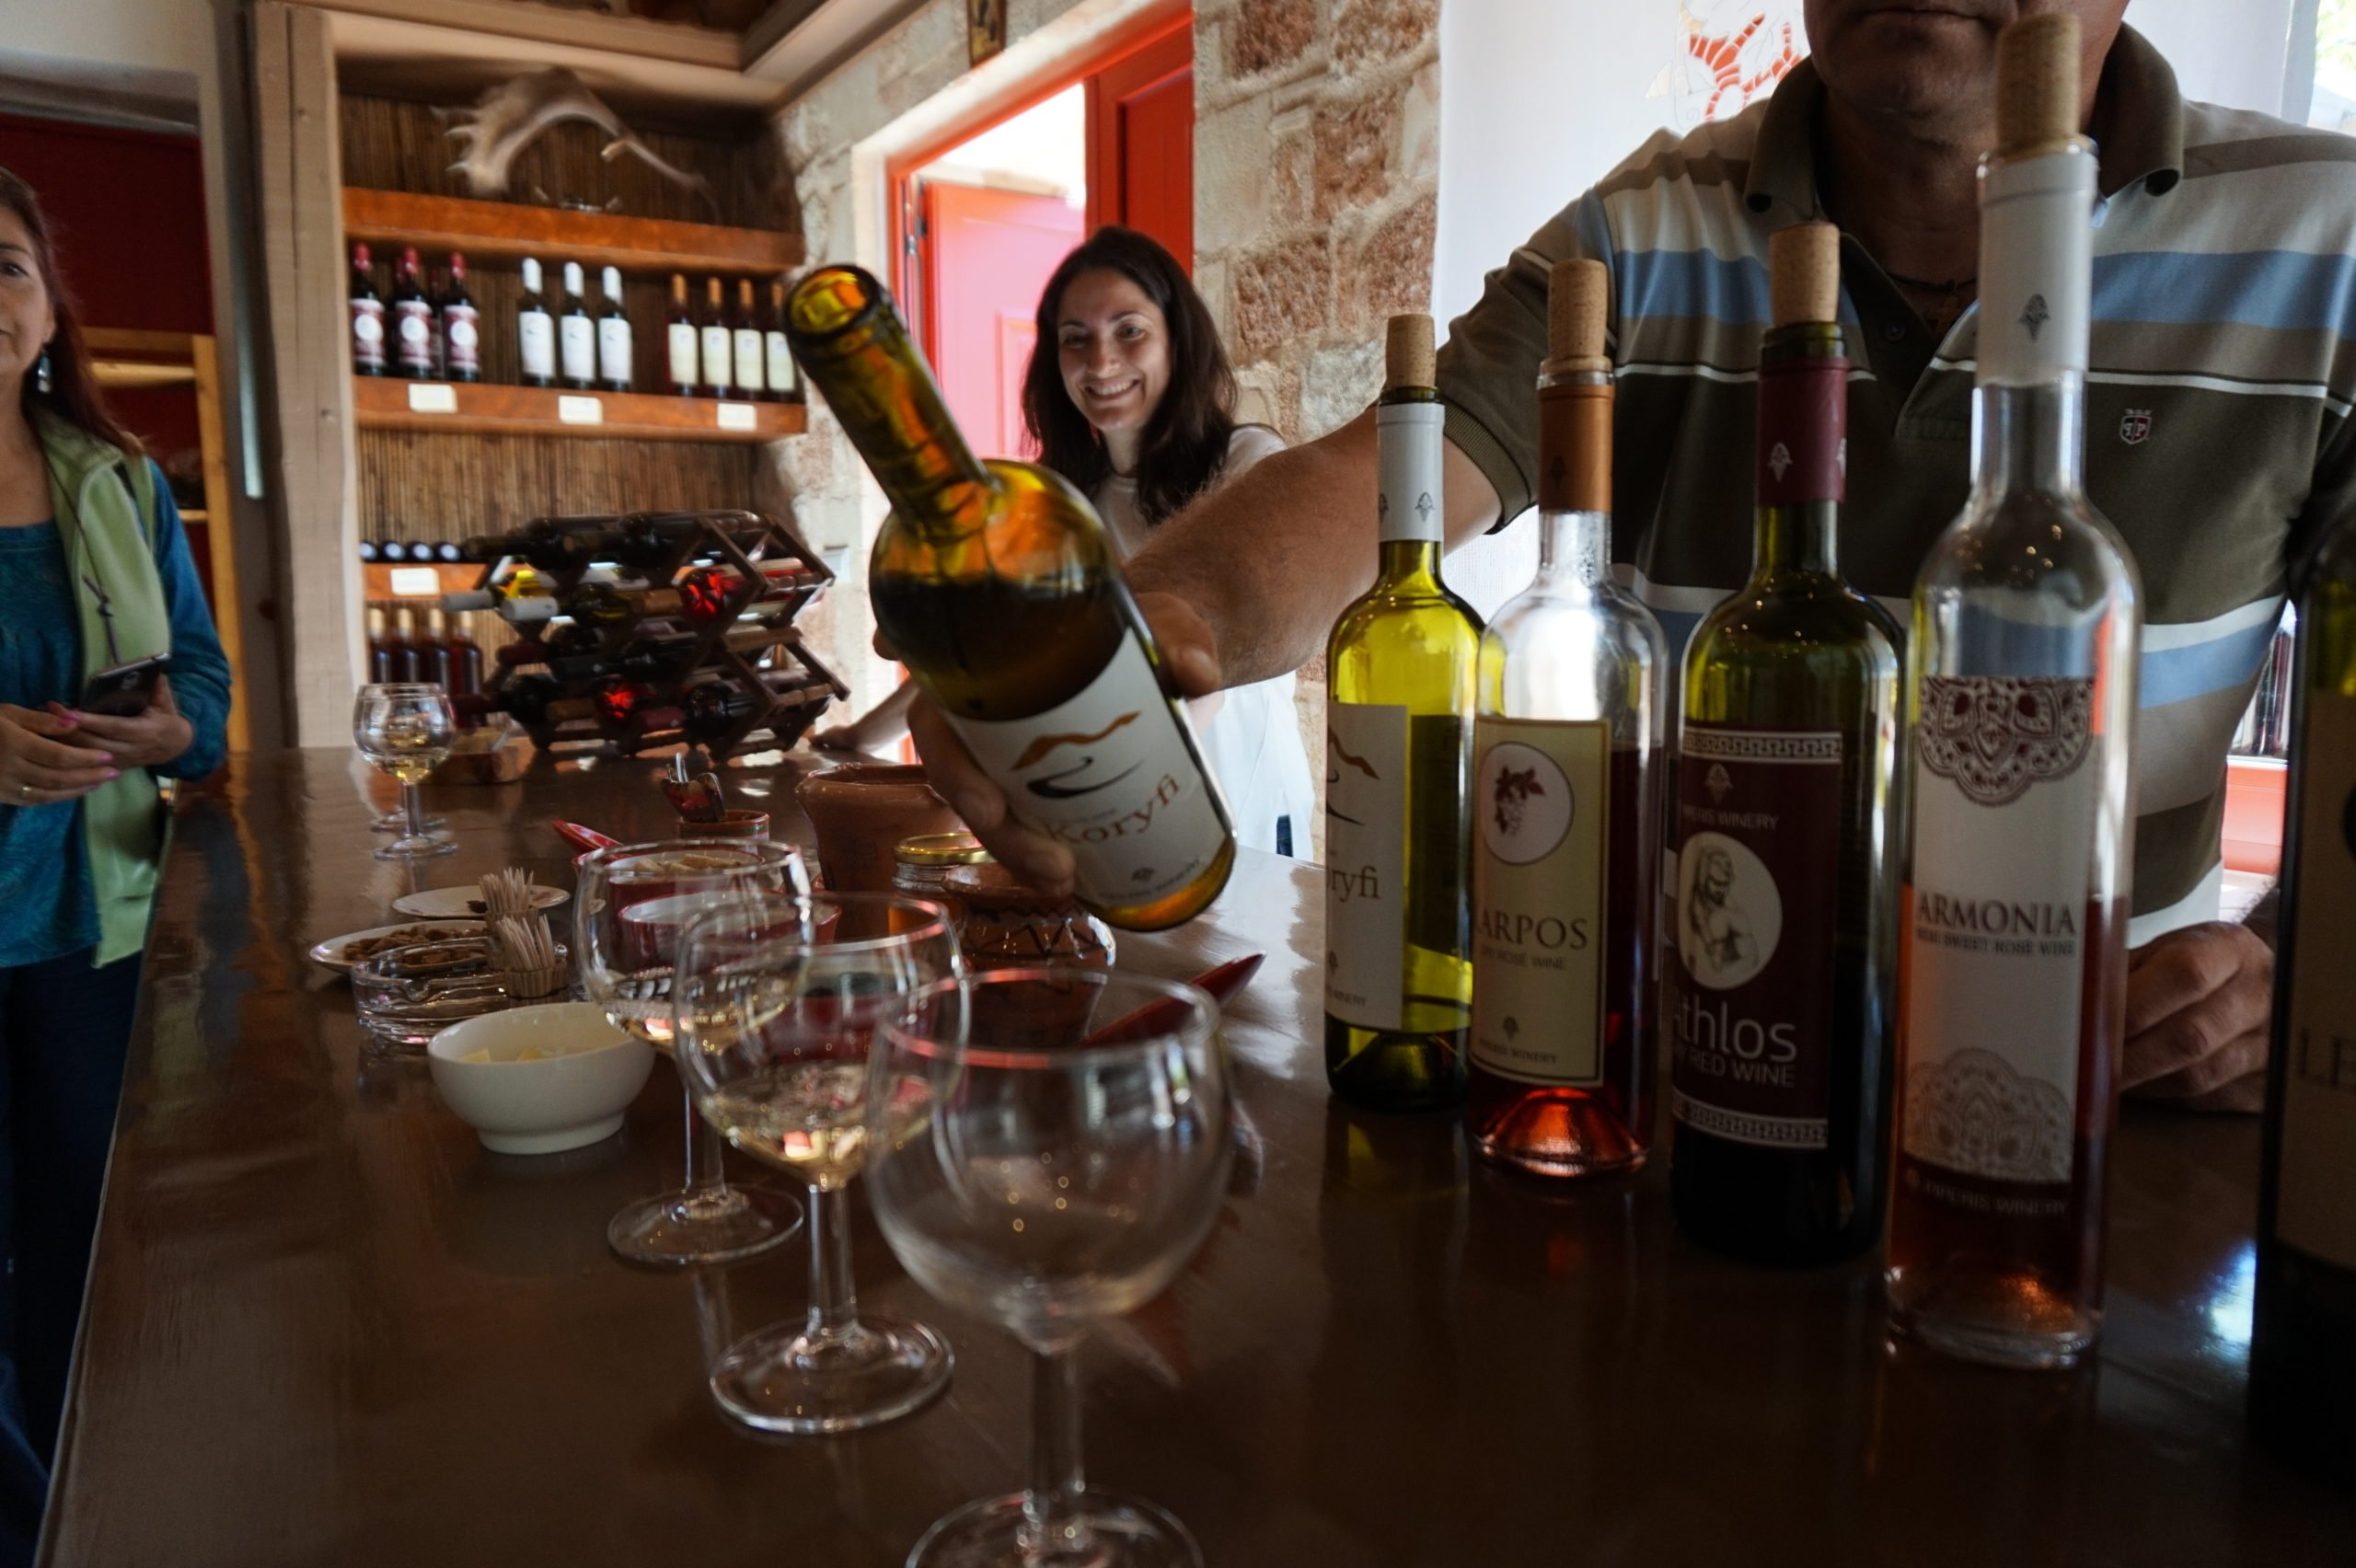 Enjoy A Wine Tasting In A Small Local Winery In Our Taste Of Rhodes Tour